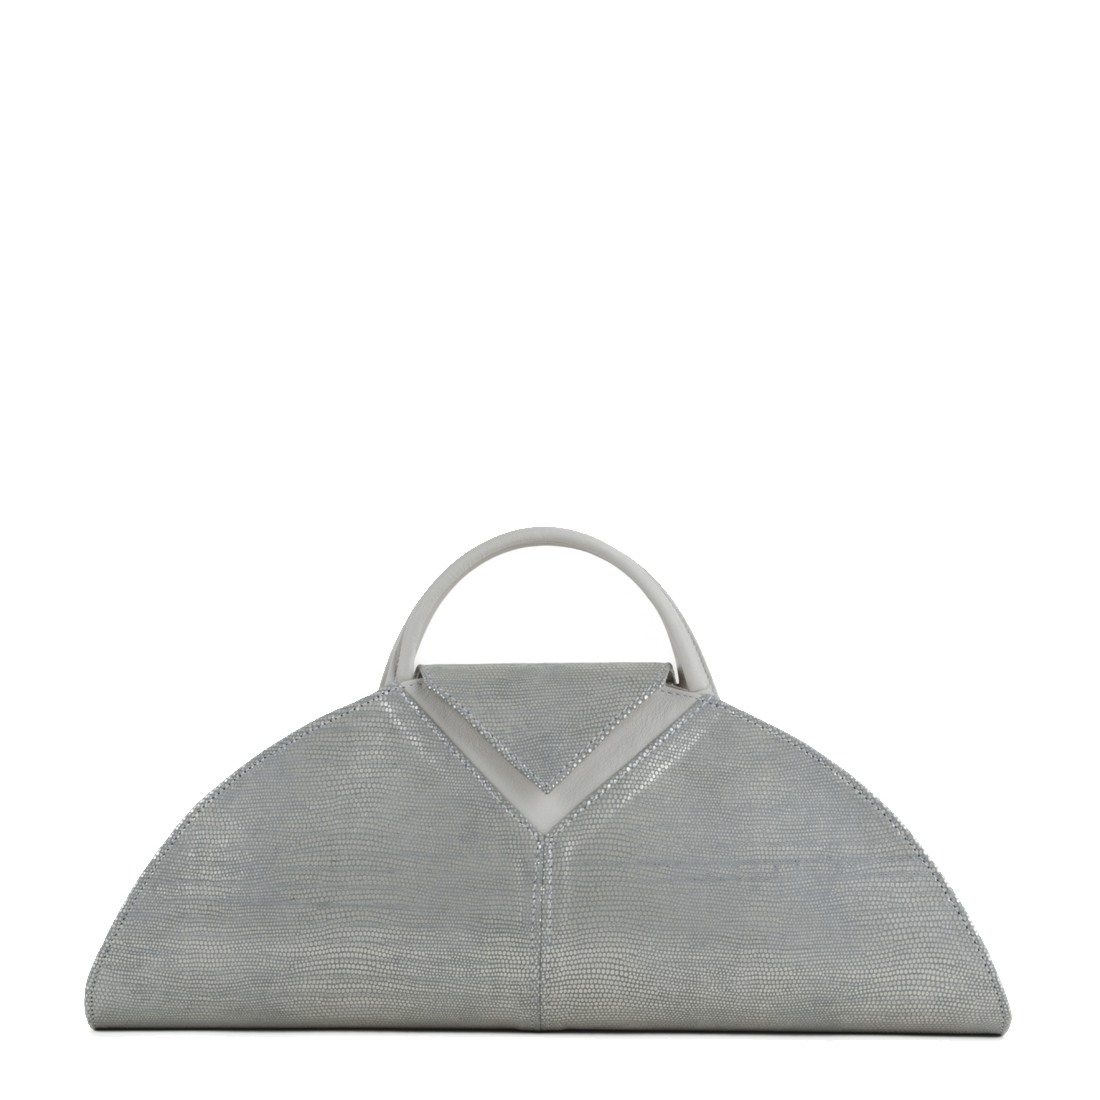 V Clutch Silver Eel Print Leather Handbag